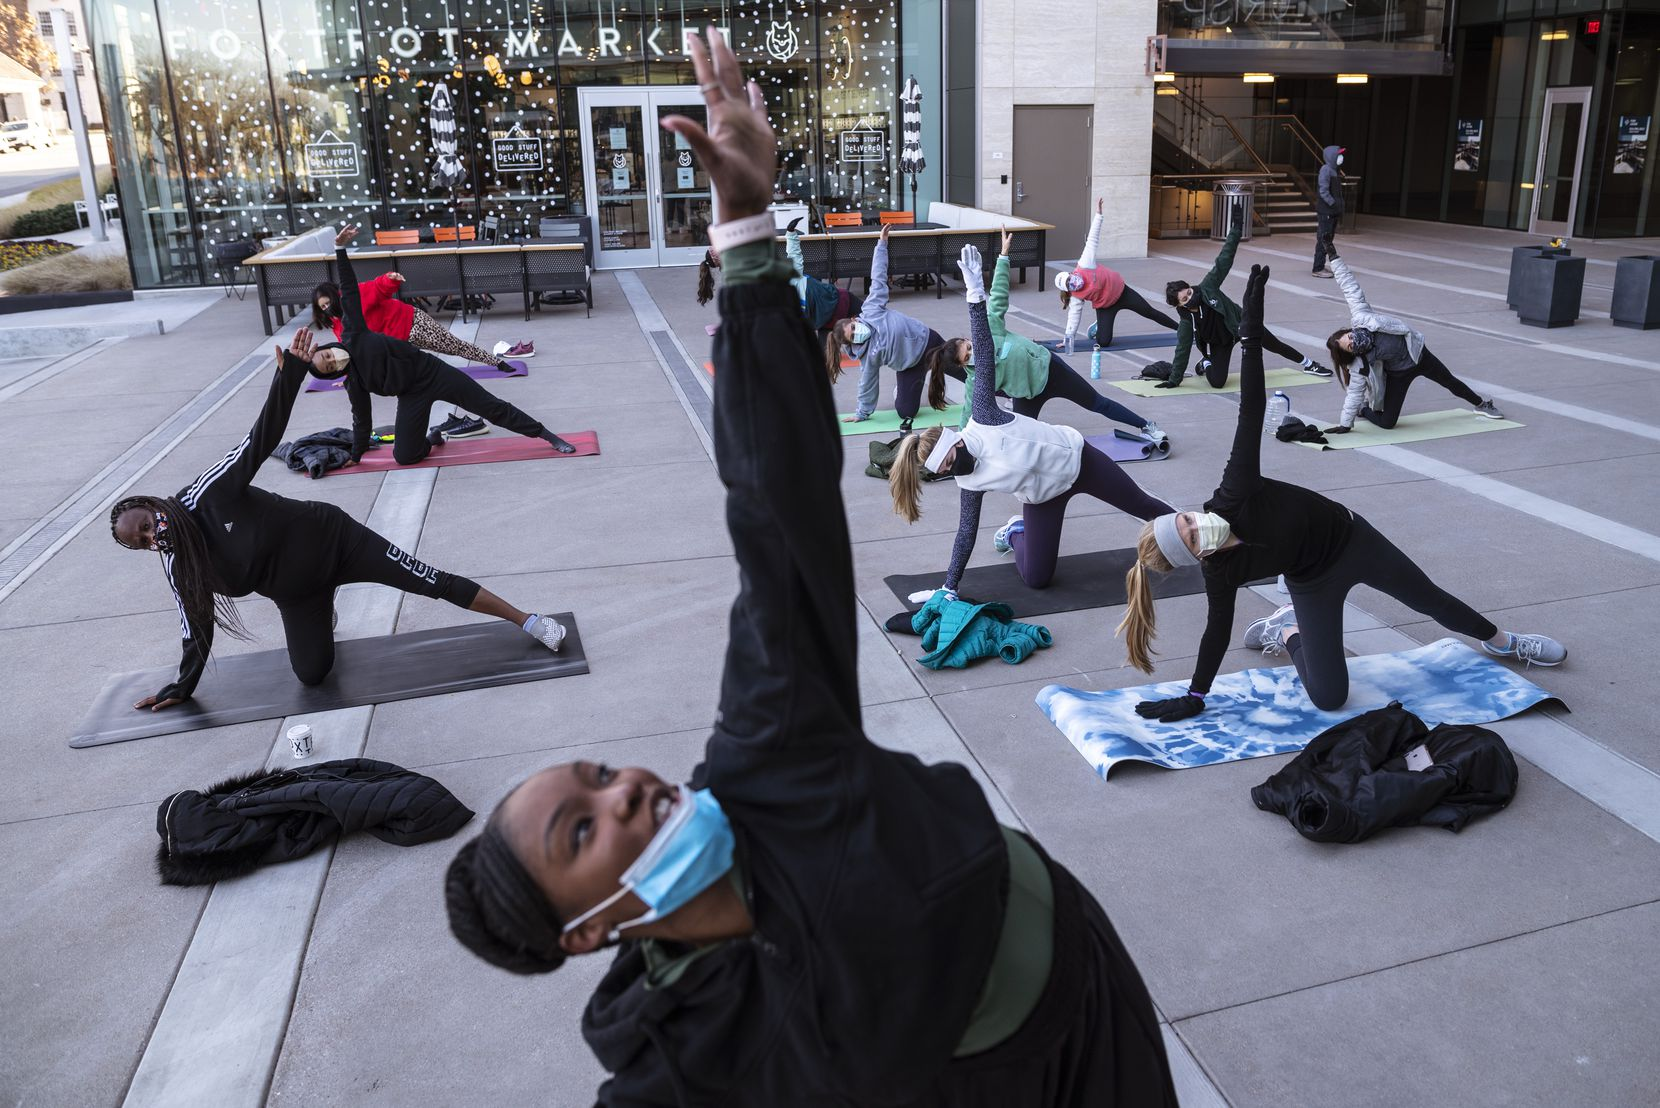 Pilates instructor Jasmine White, center, conducts a fitness class outside of Crisp & Green restaurant in Dallas on Saturday, January 9, 2021.